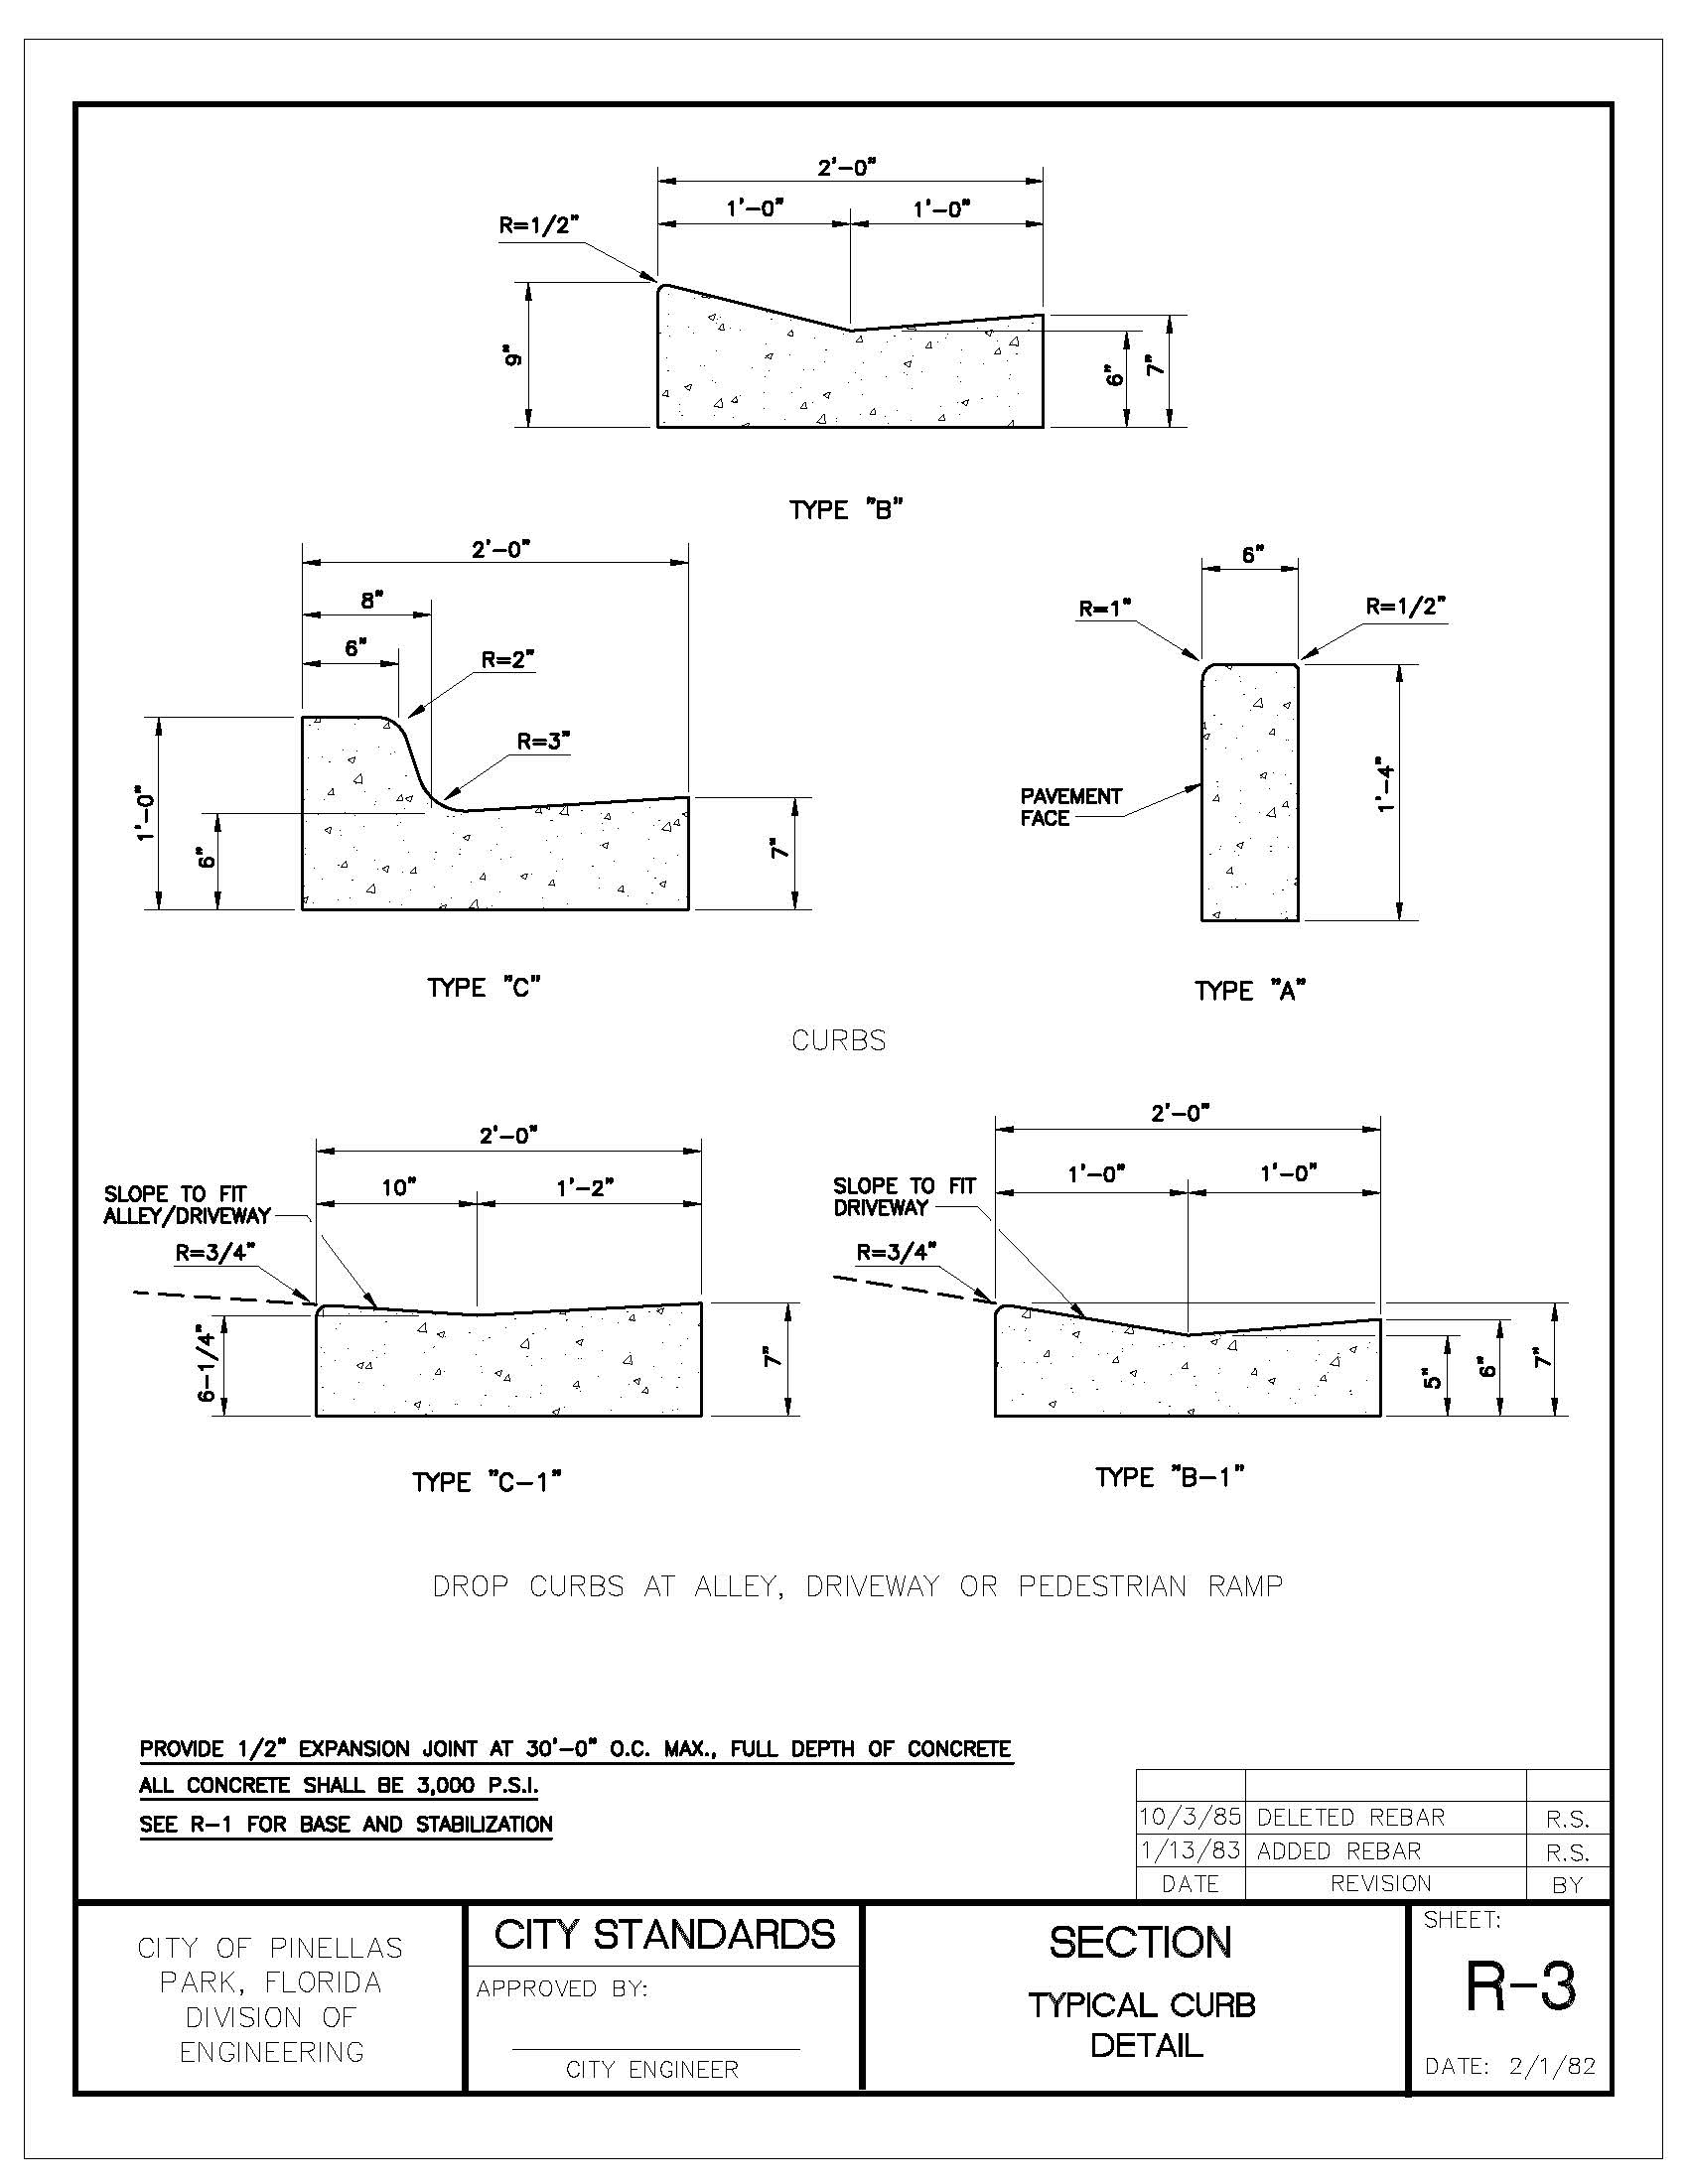 Engineering Manual v5_201908121127291138_Page_040 typical curb detail